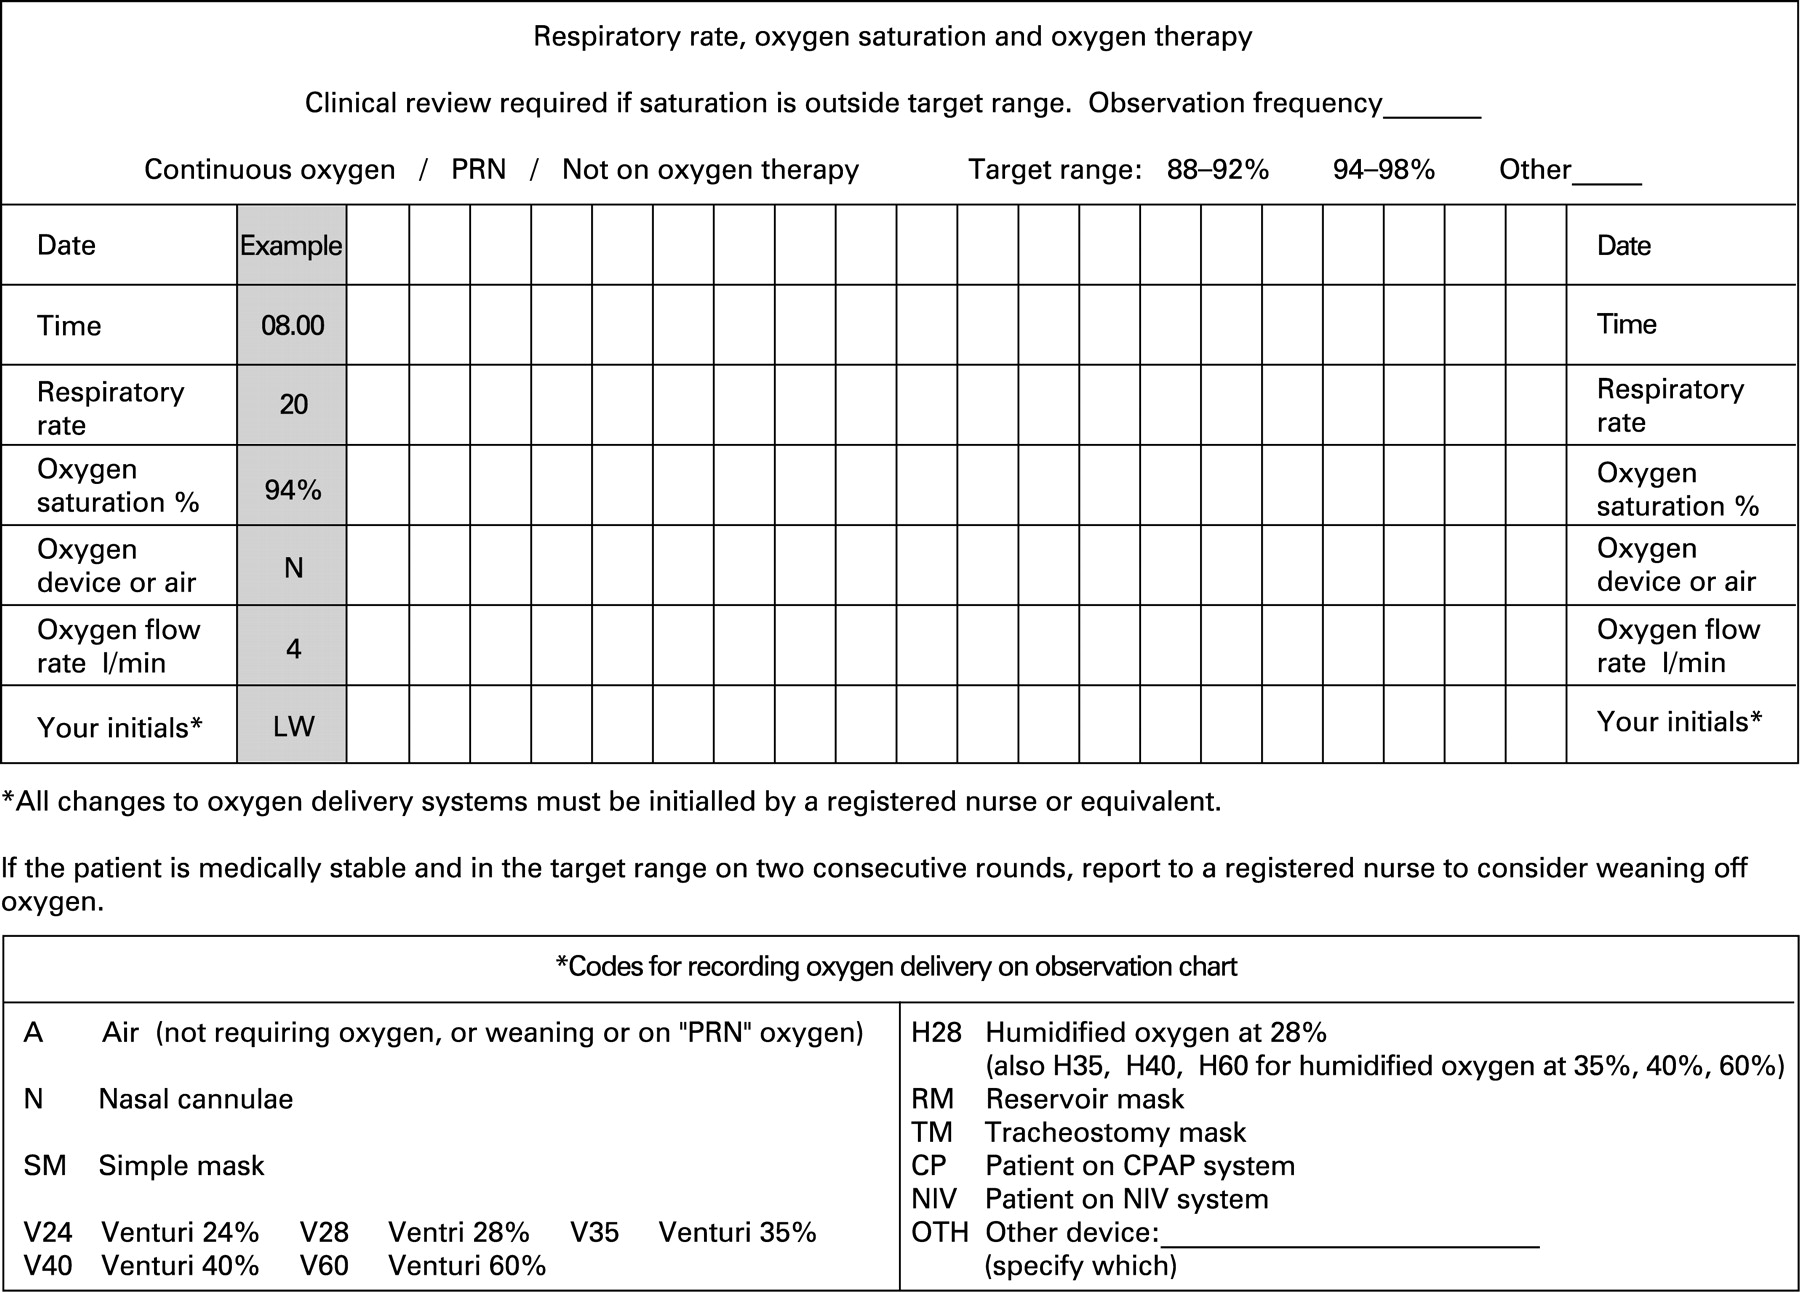 Bts guideline for emergency oxygen use in adult patients thorax download figure nvjuhfo Choice Image